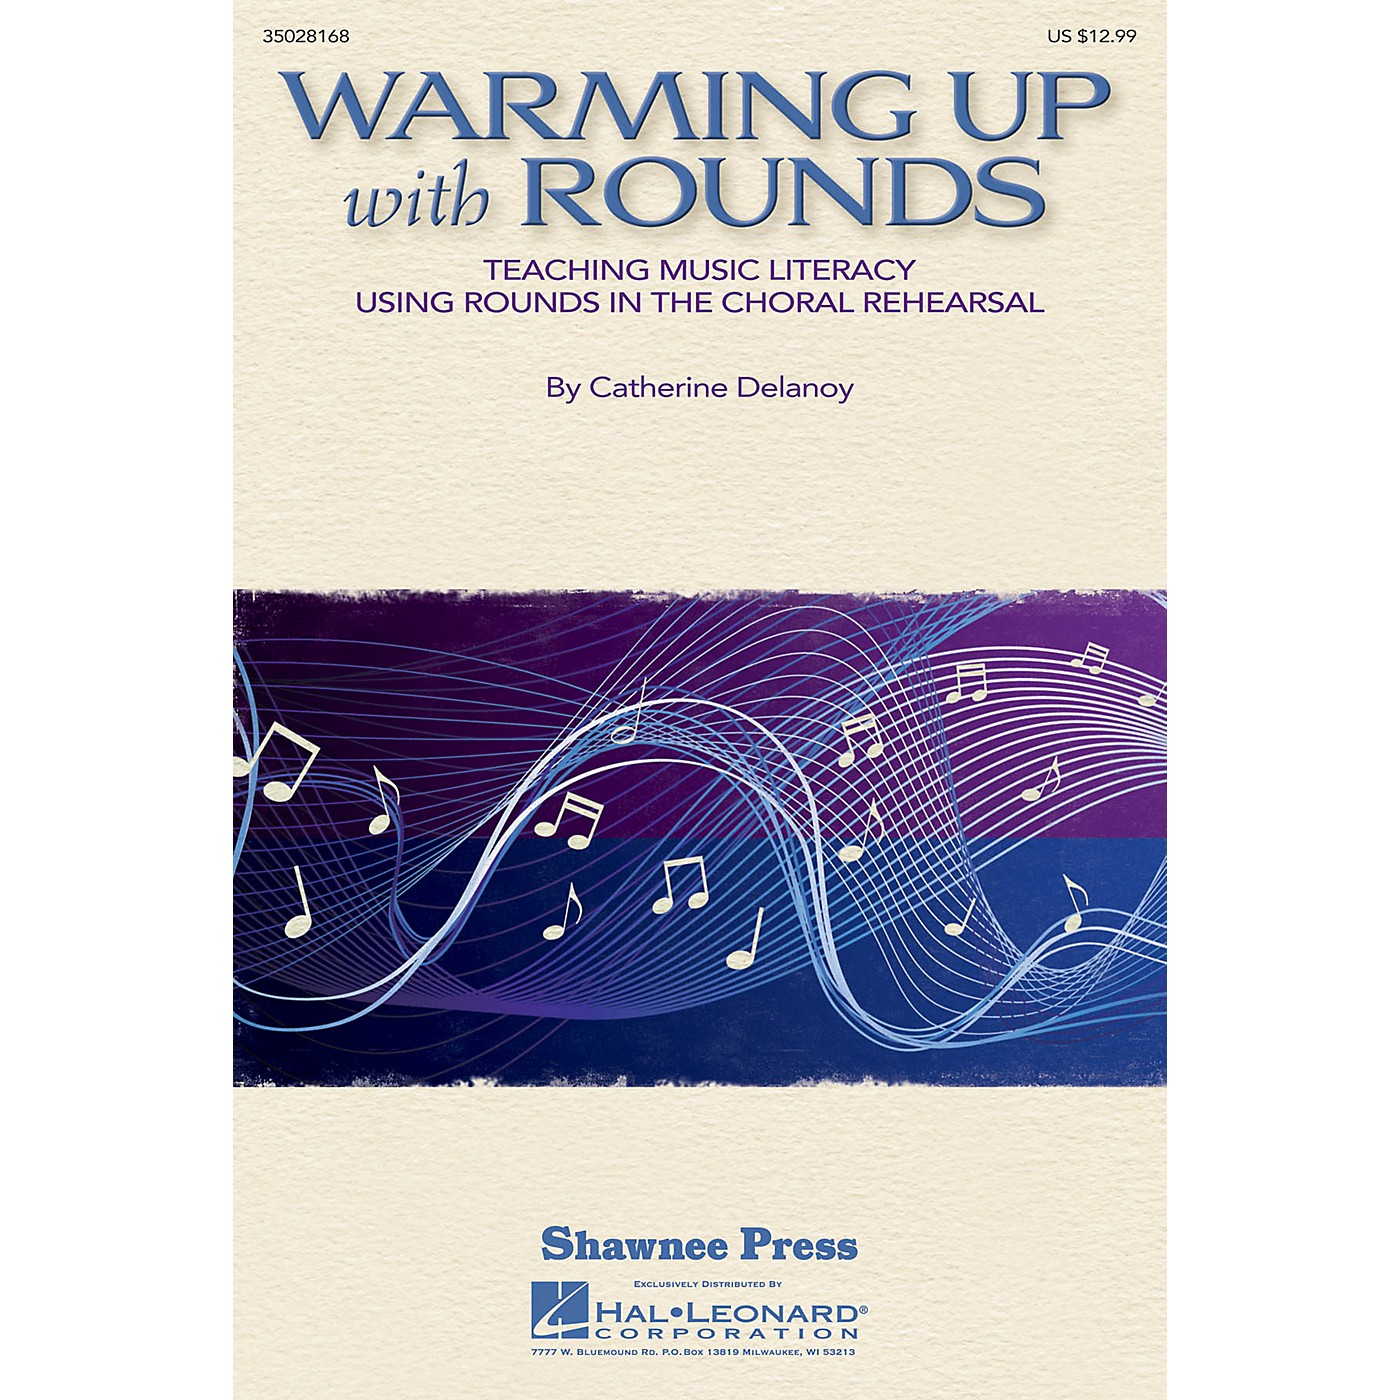 Shawnee Press Warming Up with Rounds (Teaching Music Literacy Using Rounds in the Choral Rehearsal) RESOURCE BK thumbnail